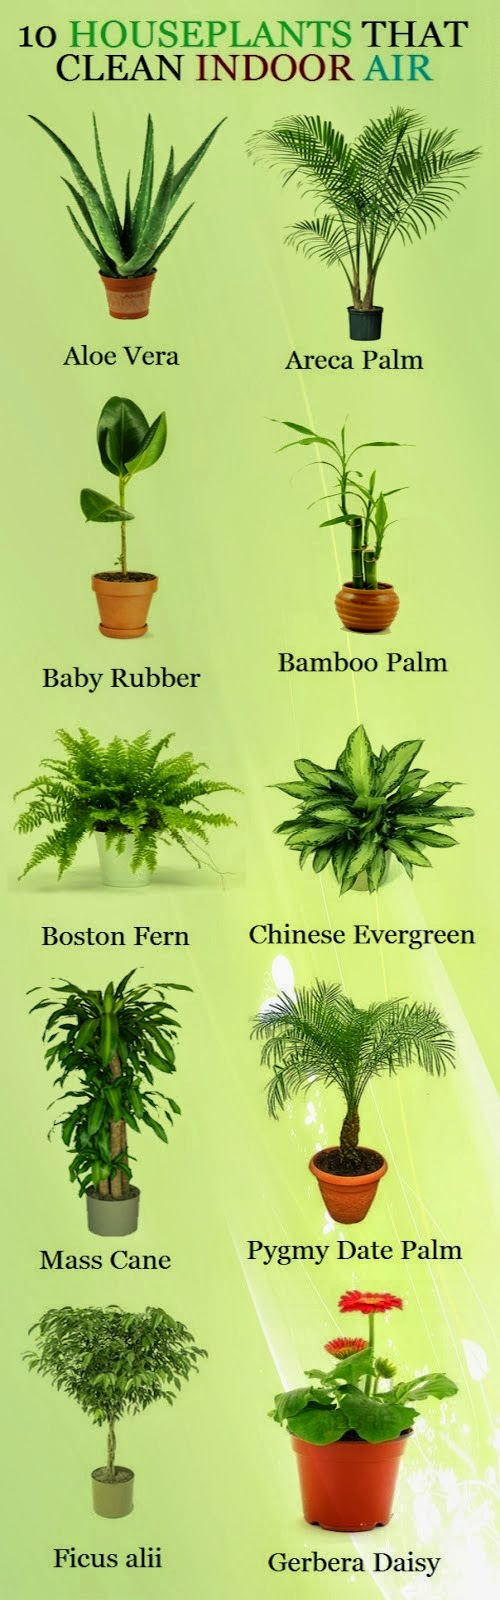 Picture of 10 plants that clean indoor air. Aloe Vera, Areca Palm, Baby Rubber Plant, Bamboo Palm, Boston Fern, Chinese Evergreen, Mass Cane, Pygmy Date Palm, Gerbera Daisy.